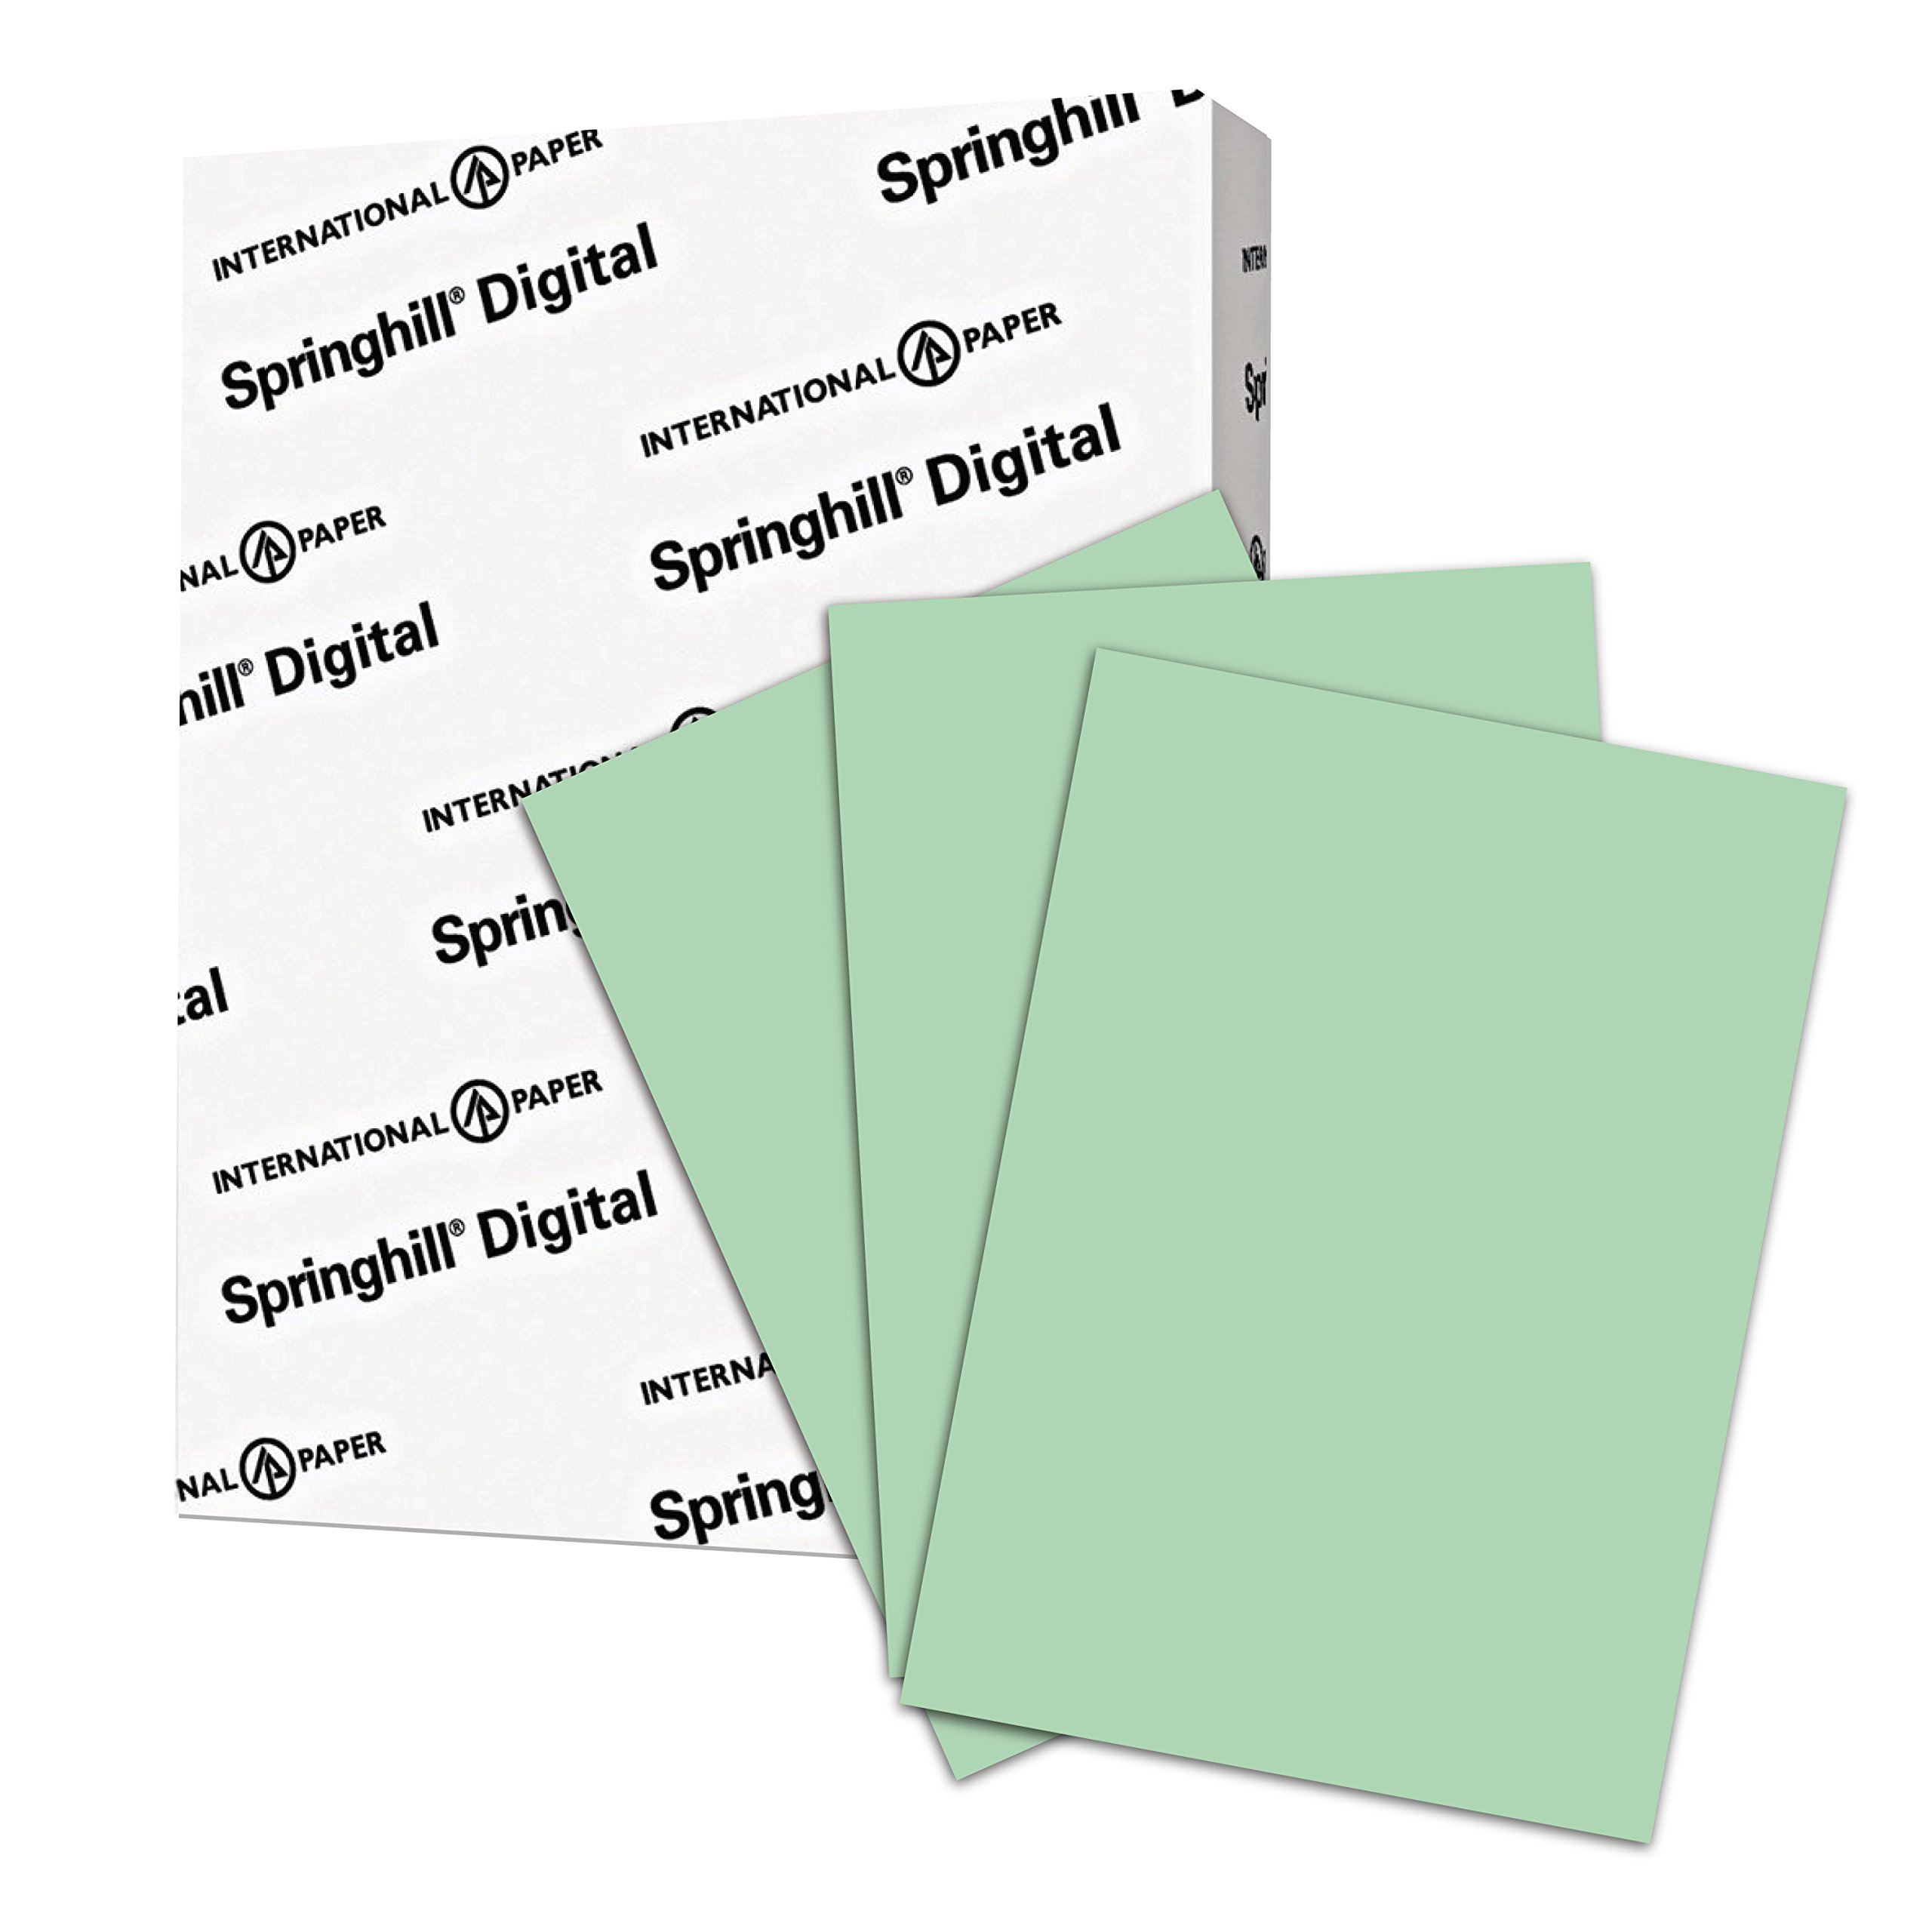 Springhill Colored Paper, Heavy Paper, Green Paper, 28/70lb, 104 gsm, Ledger, 11 x 17, 1 Ream / 500 Sheets - Opaque, Thick Paper (024185R) by Springhill